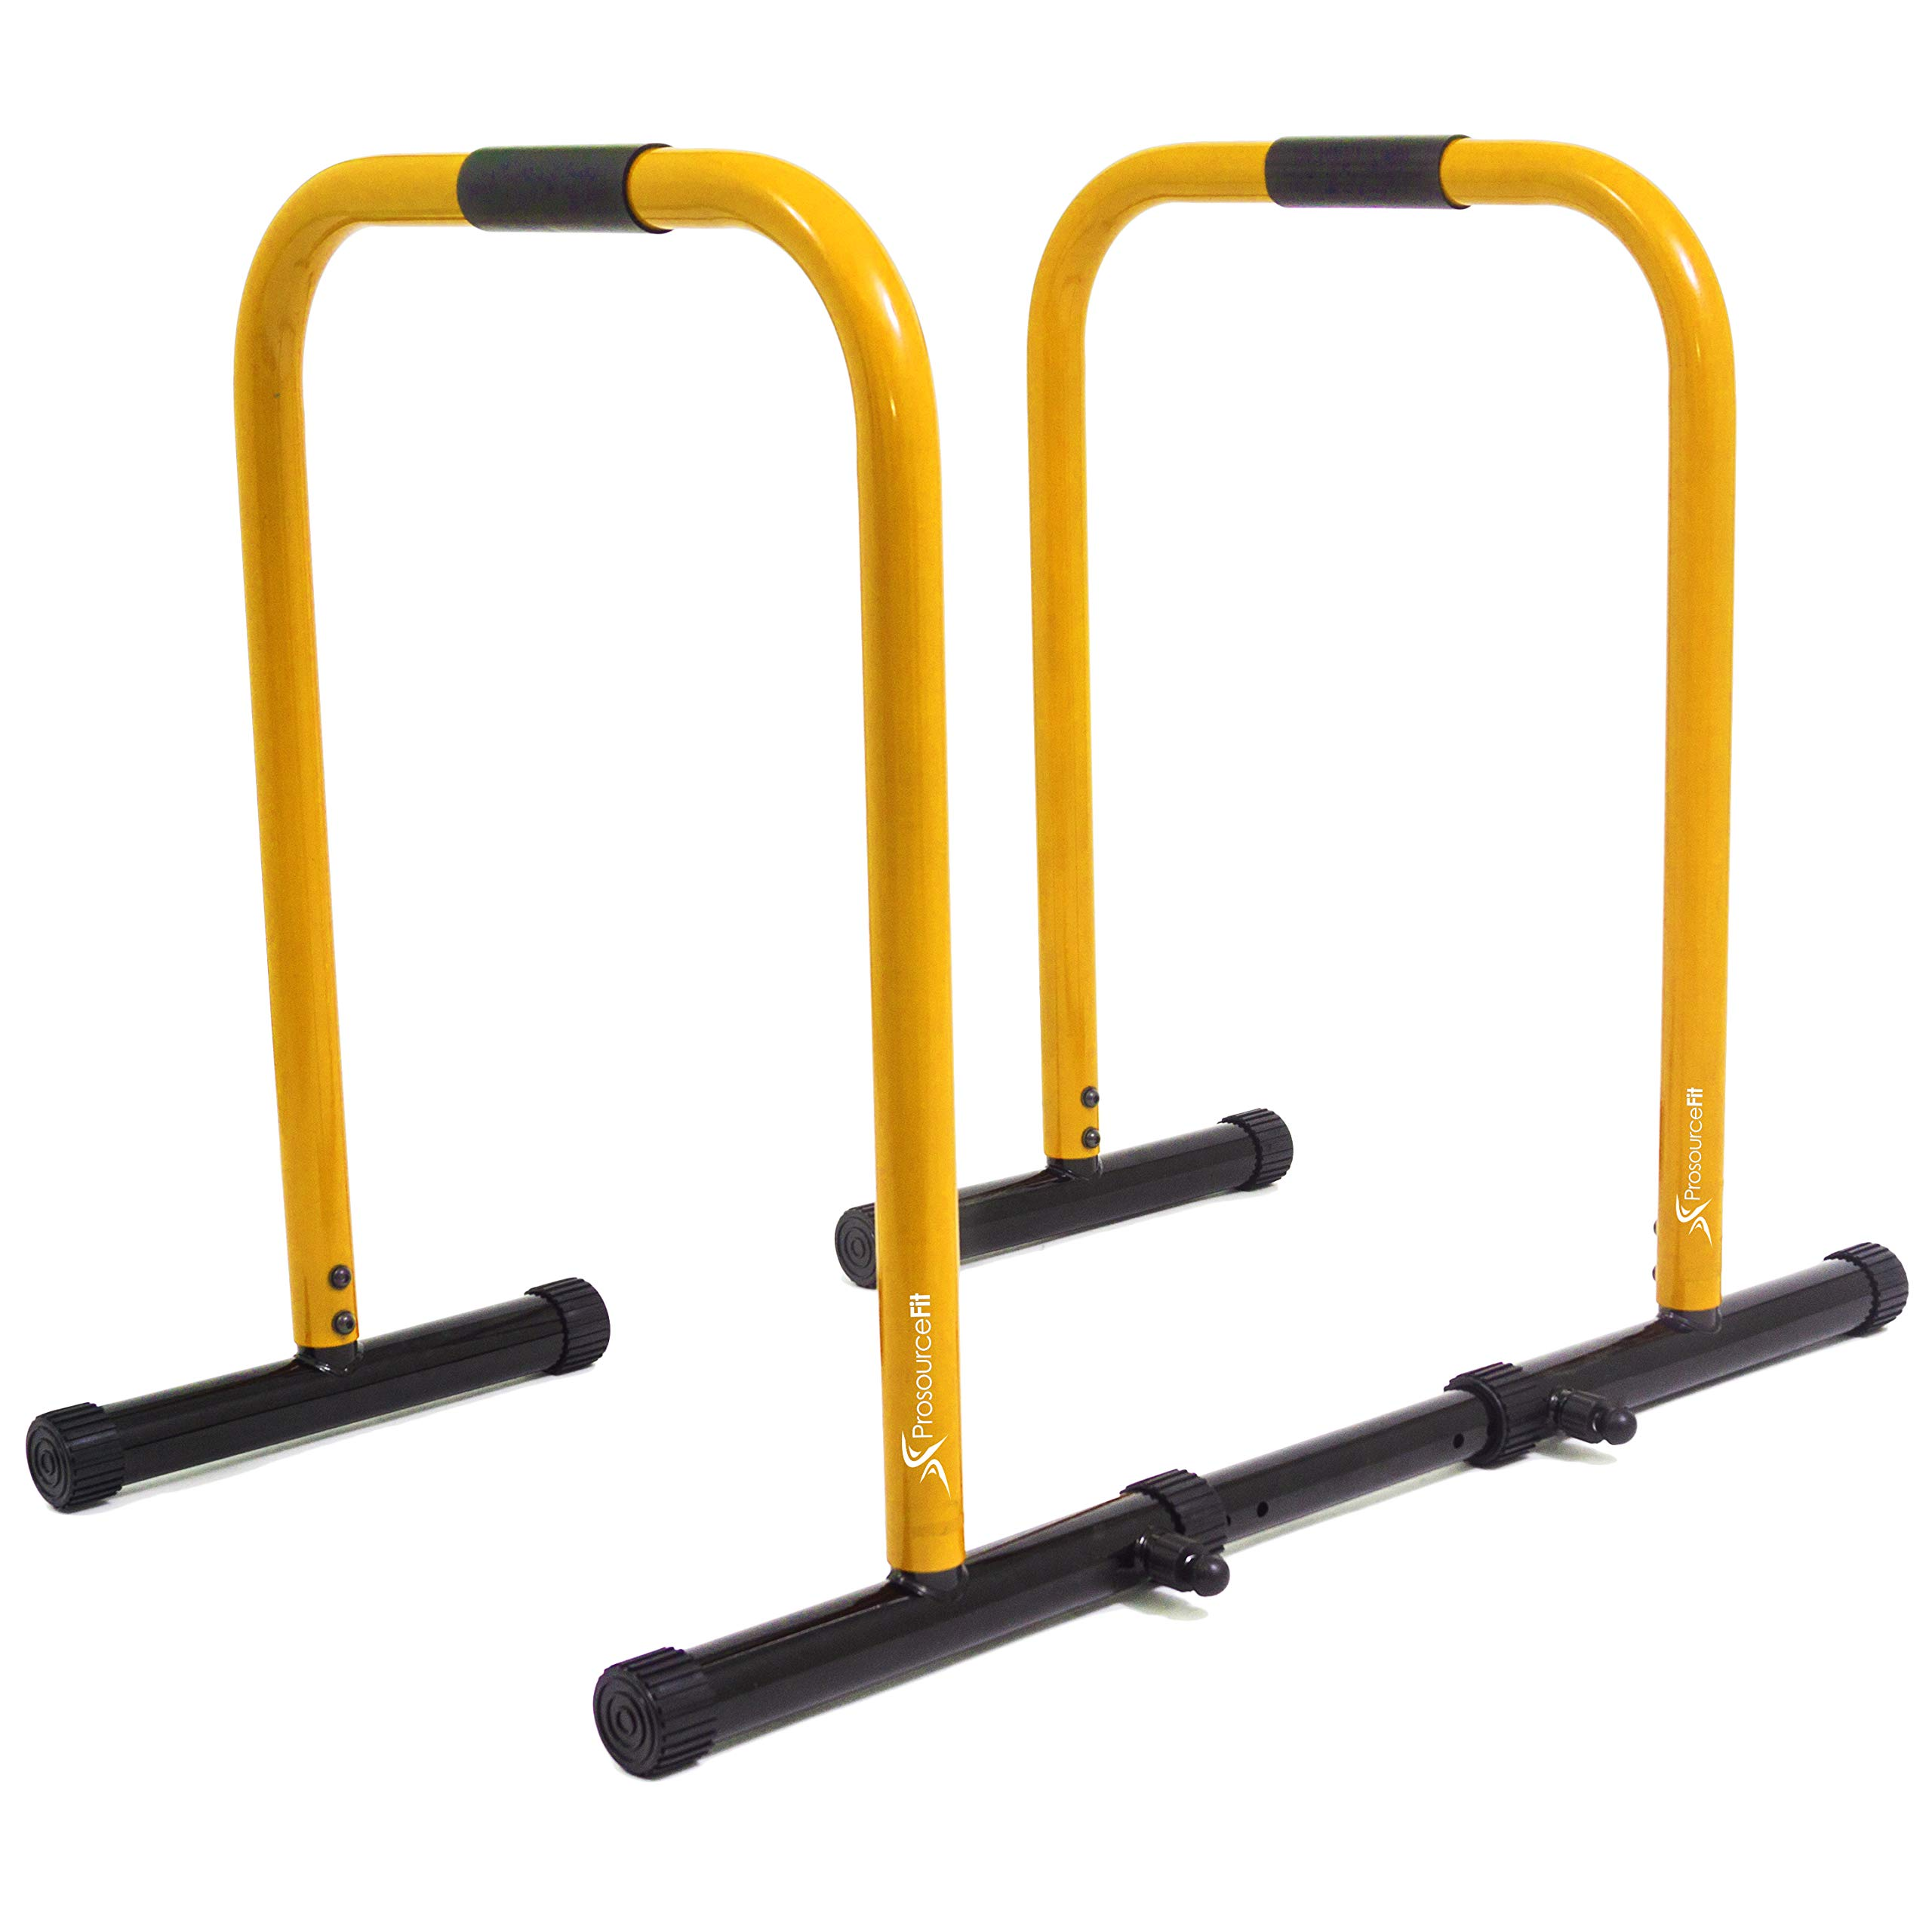 ProsourceFit Dip Stand Station, Heavy Duty Ultimate Body Press Bar with Safety Connector for Tricep Dips, Pull-Ups, Push-Ups, L-Sits, Yellow by ProsourceFit